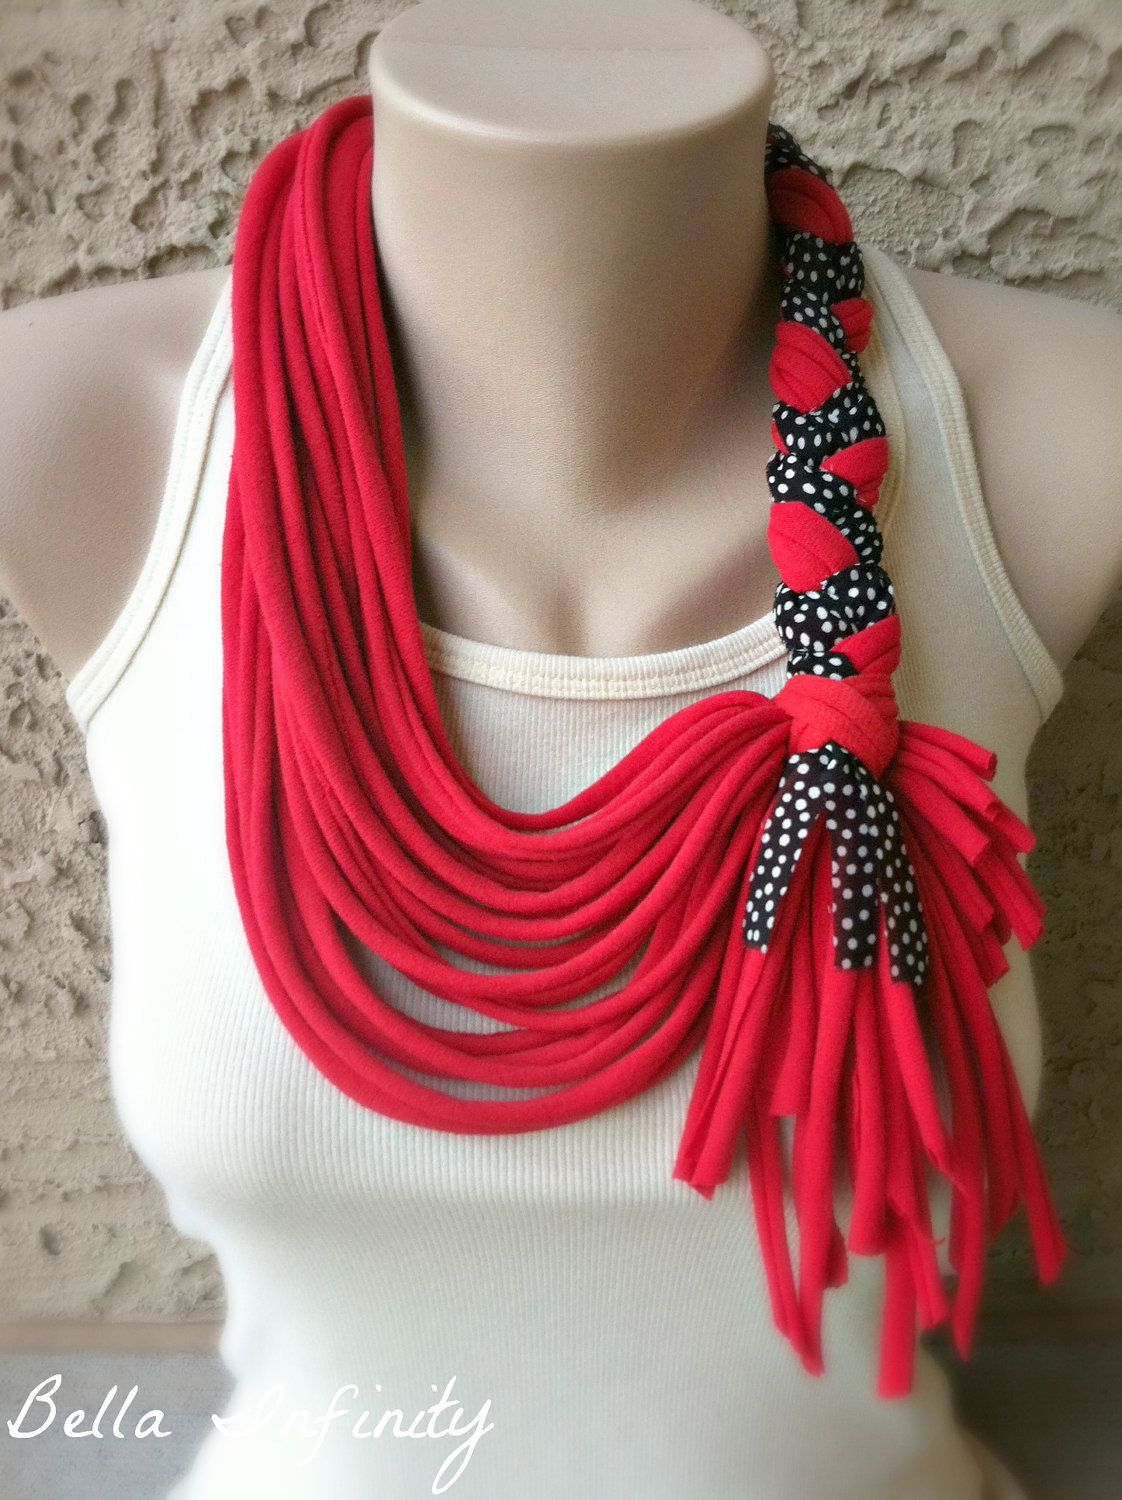 Diy Tshirt Scarf Bella Infinity Braided Scarf Jersey Fabric Red Upcycled